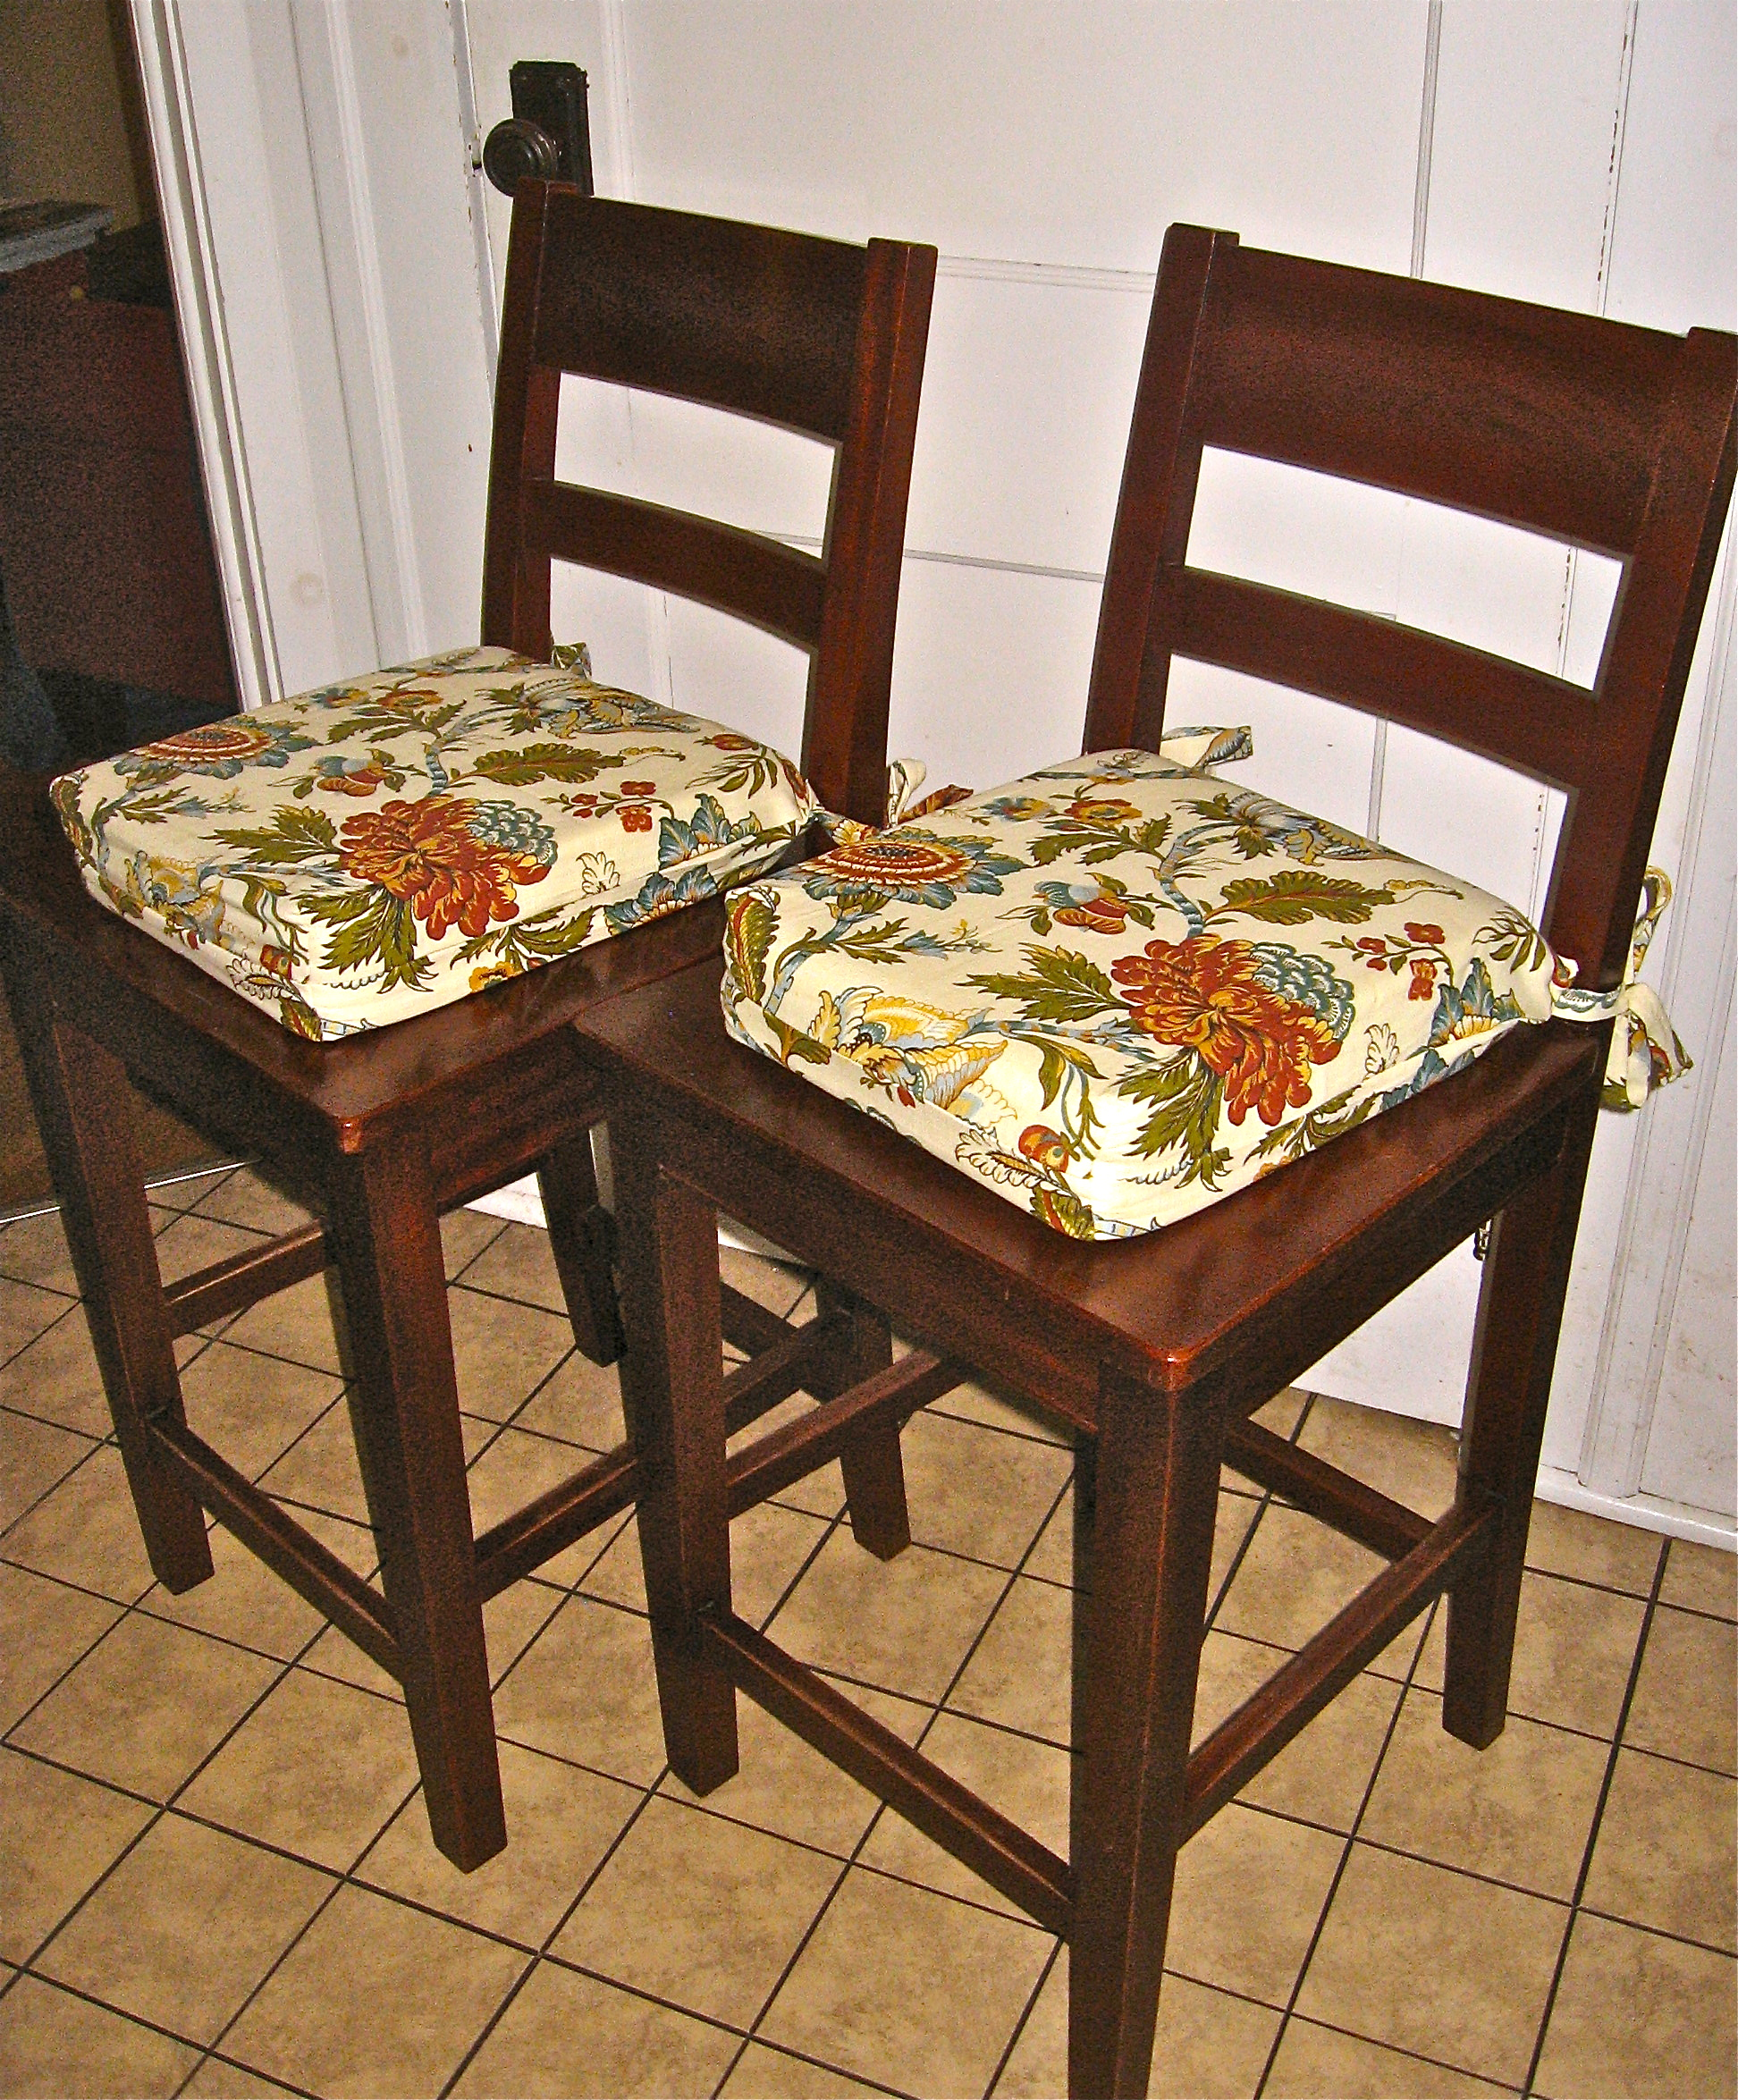 Kitchen Chairs Tie On Cushions For Kitchen Chairs